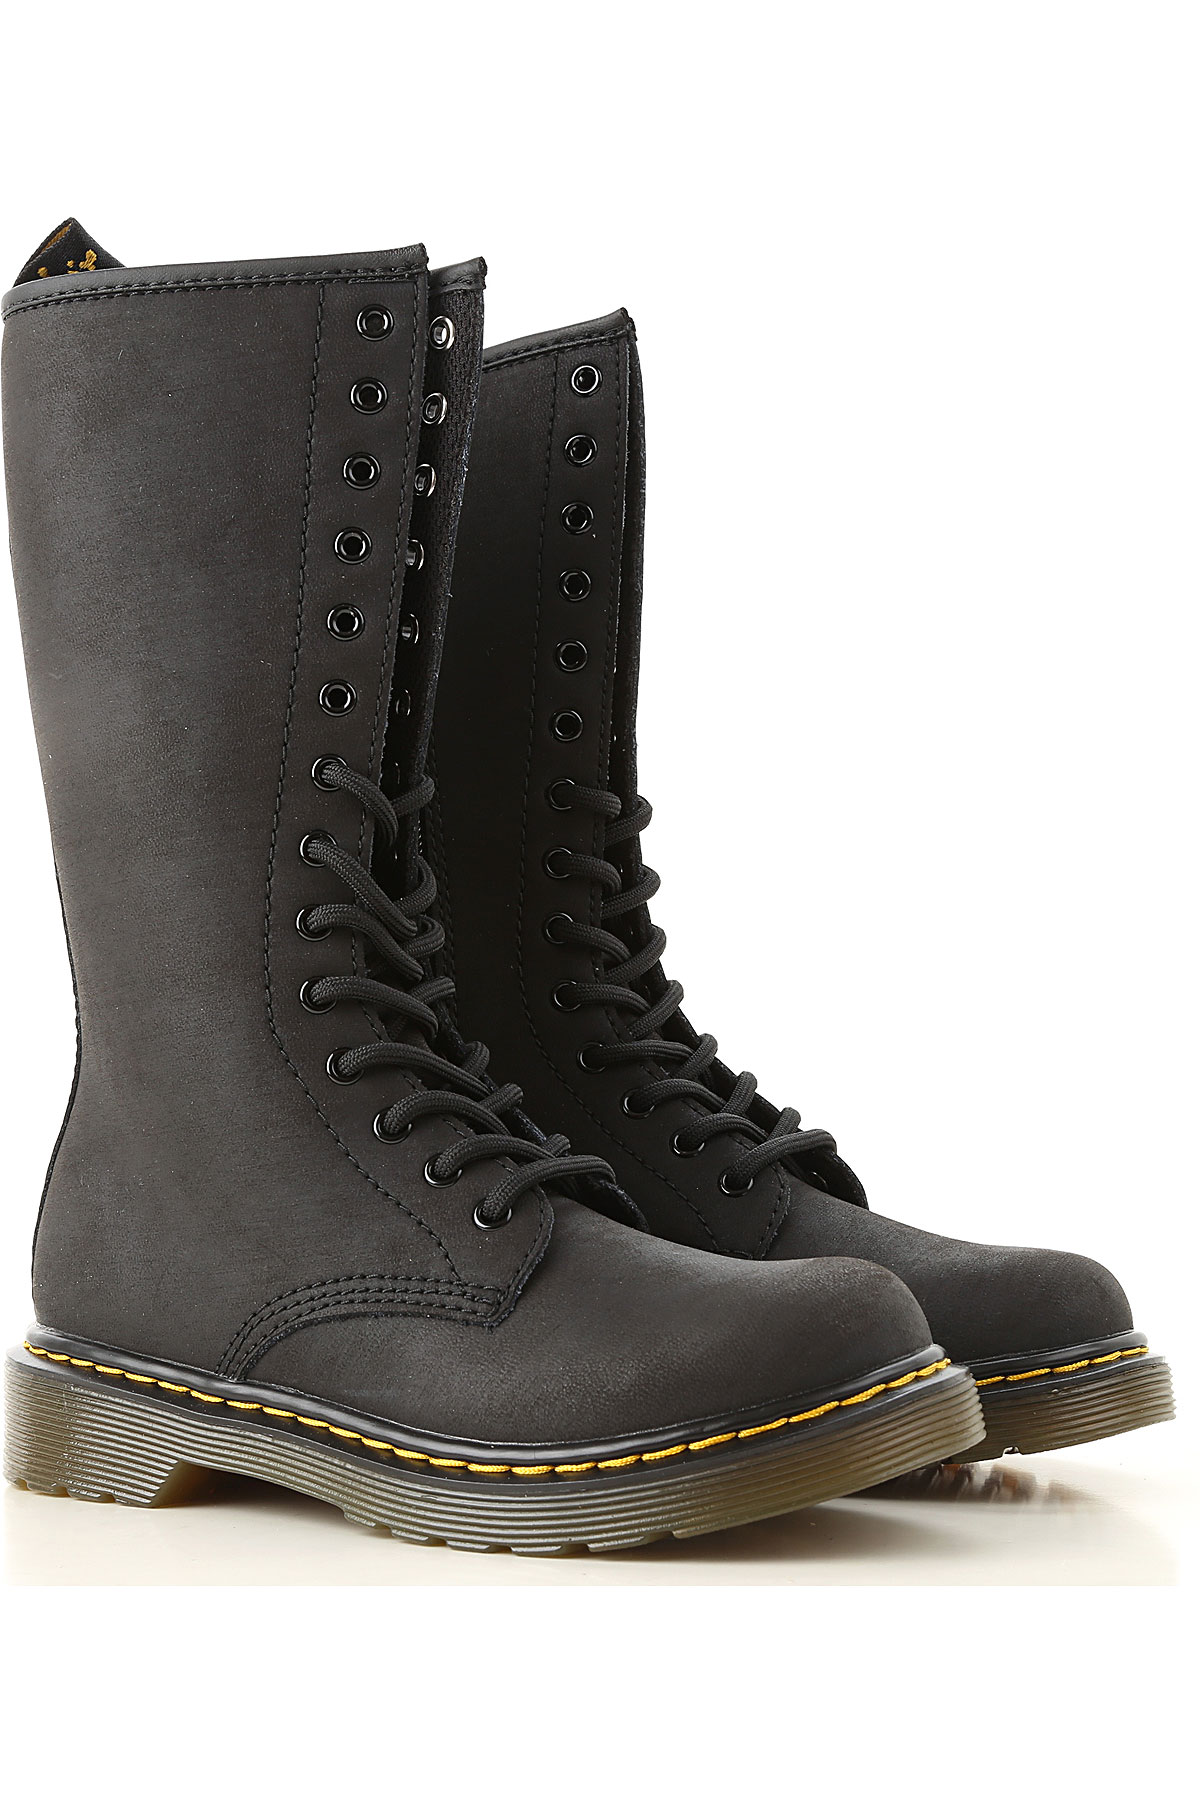 Image of Dr. Martens Boots, Black, Calf Leather, 2017, 28 29 30 31 32 33 34 35 36